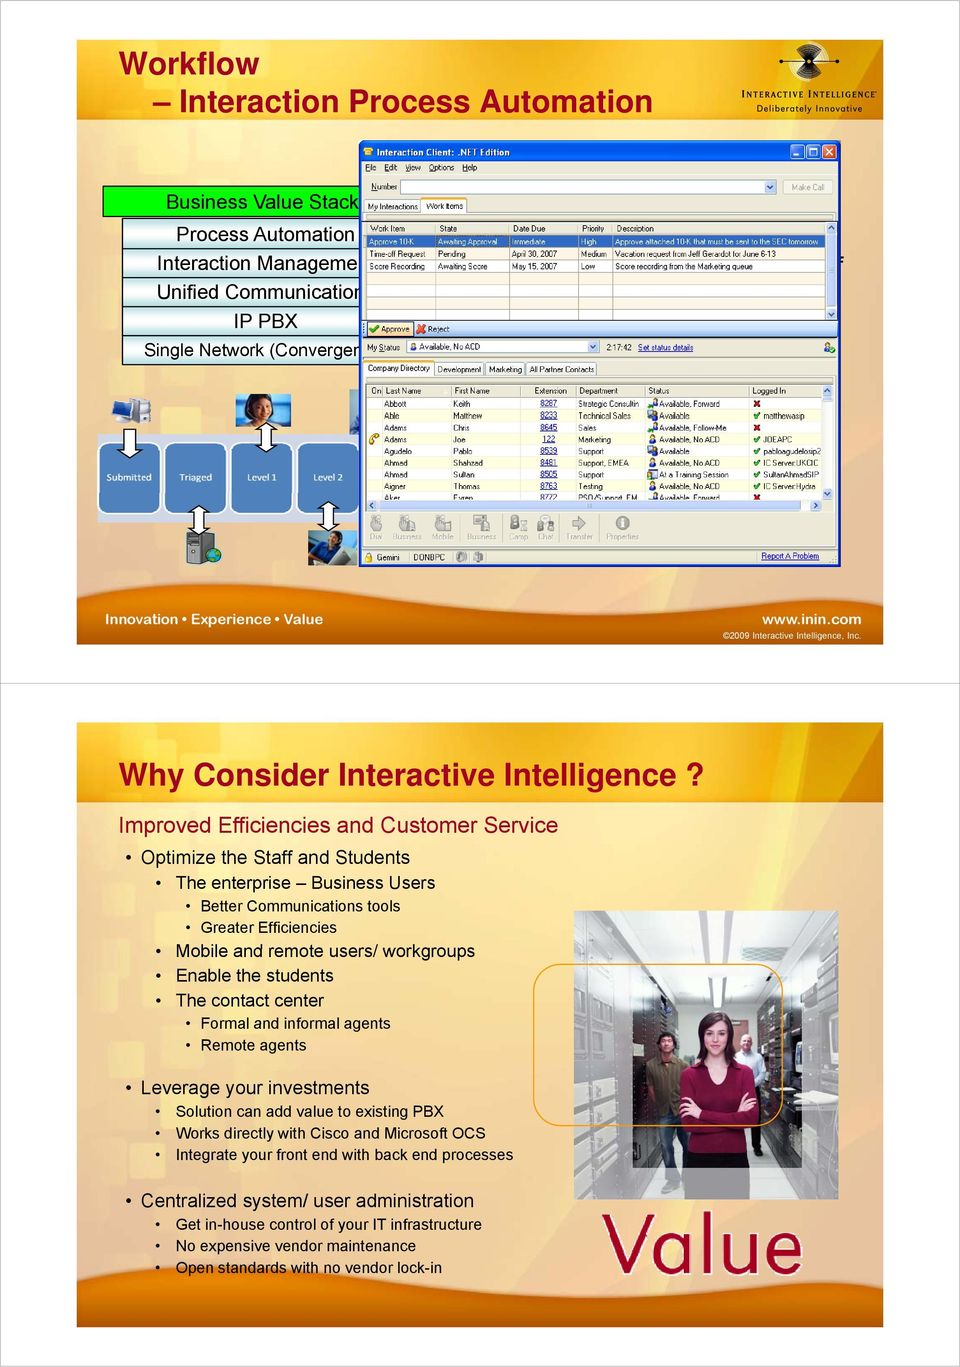 business automation tool Why Consider Interactive Intelligence?